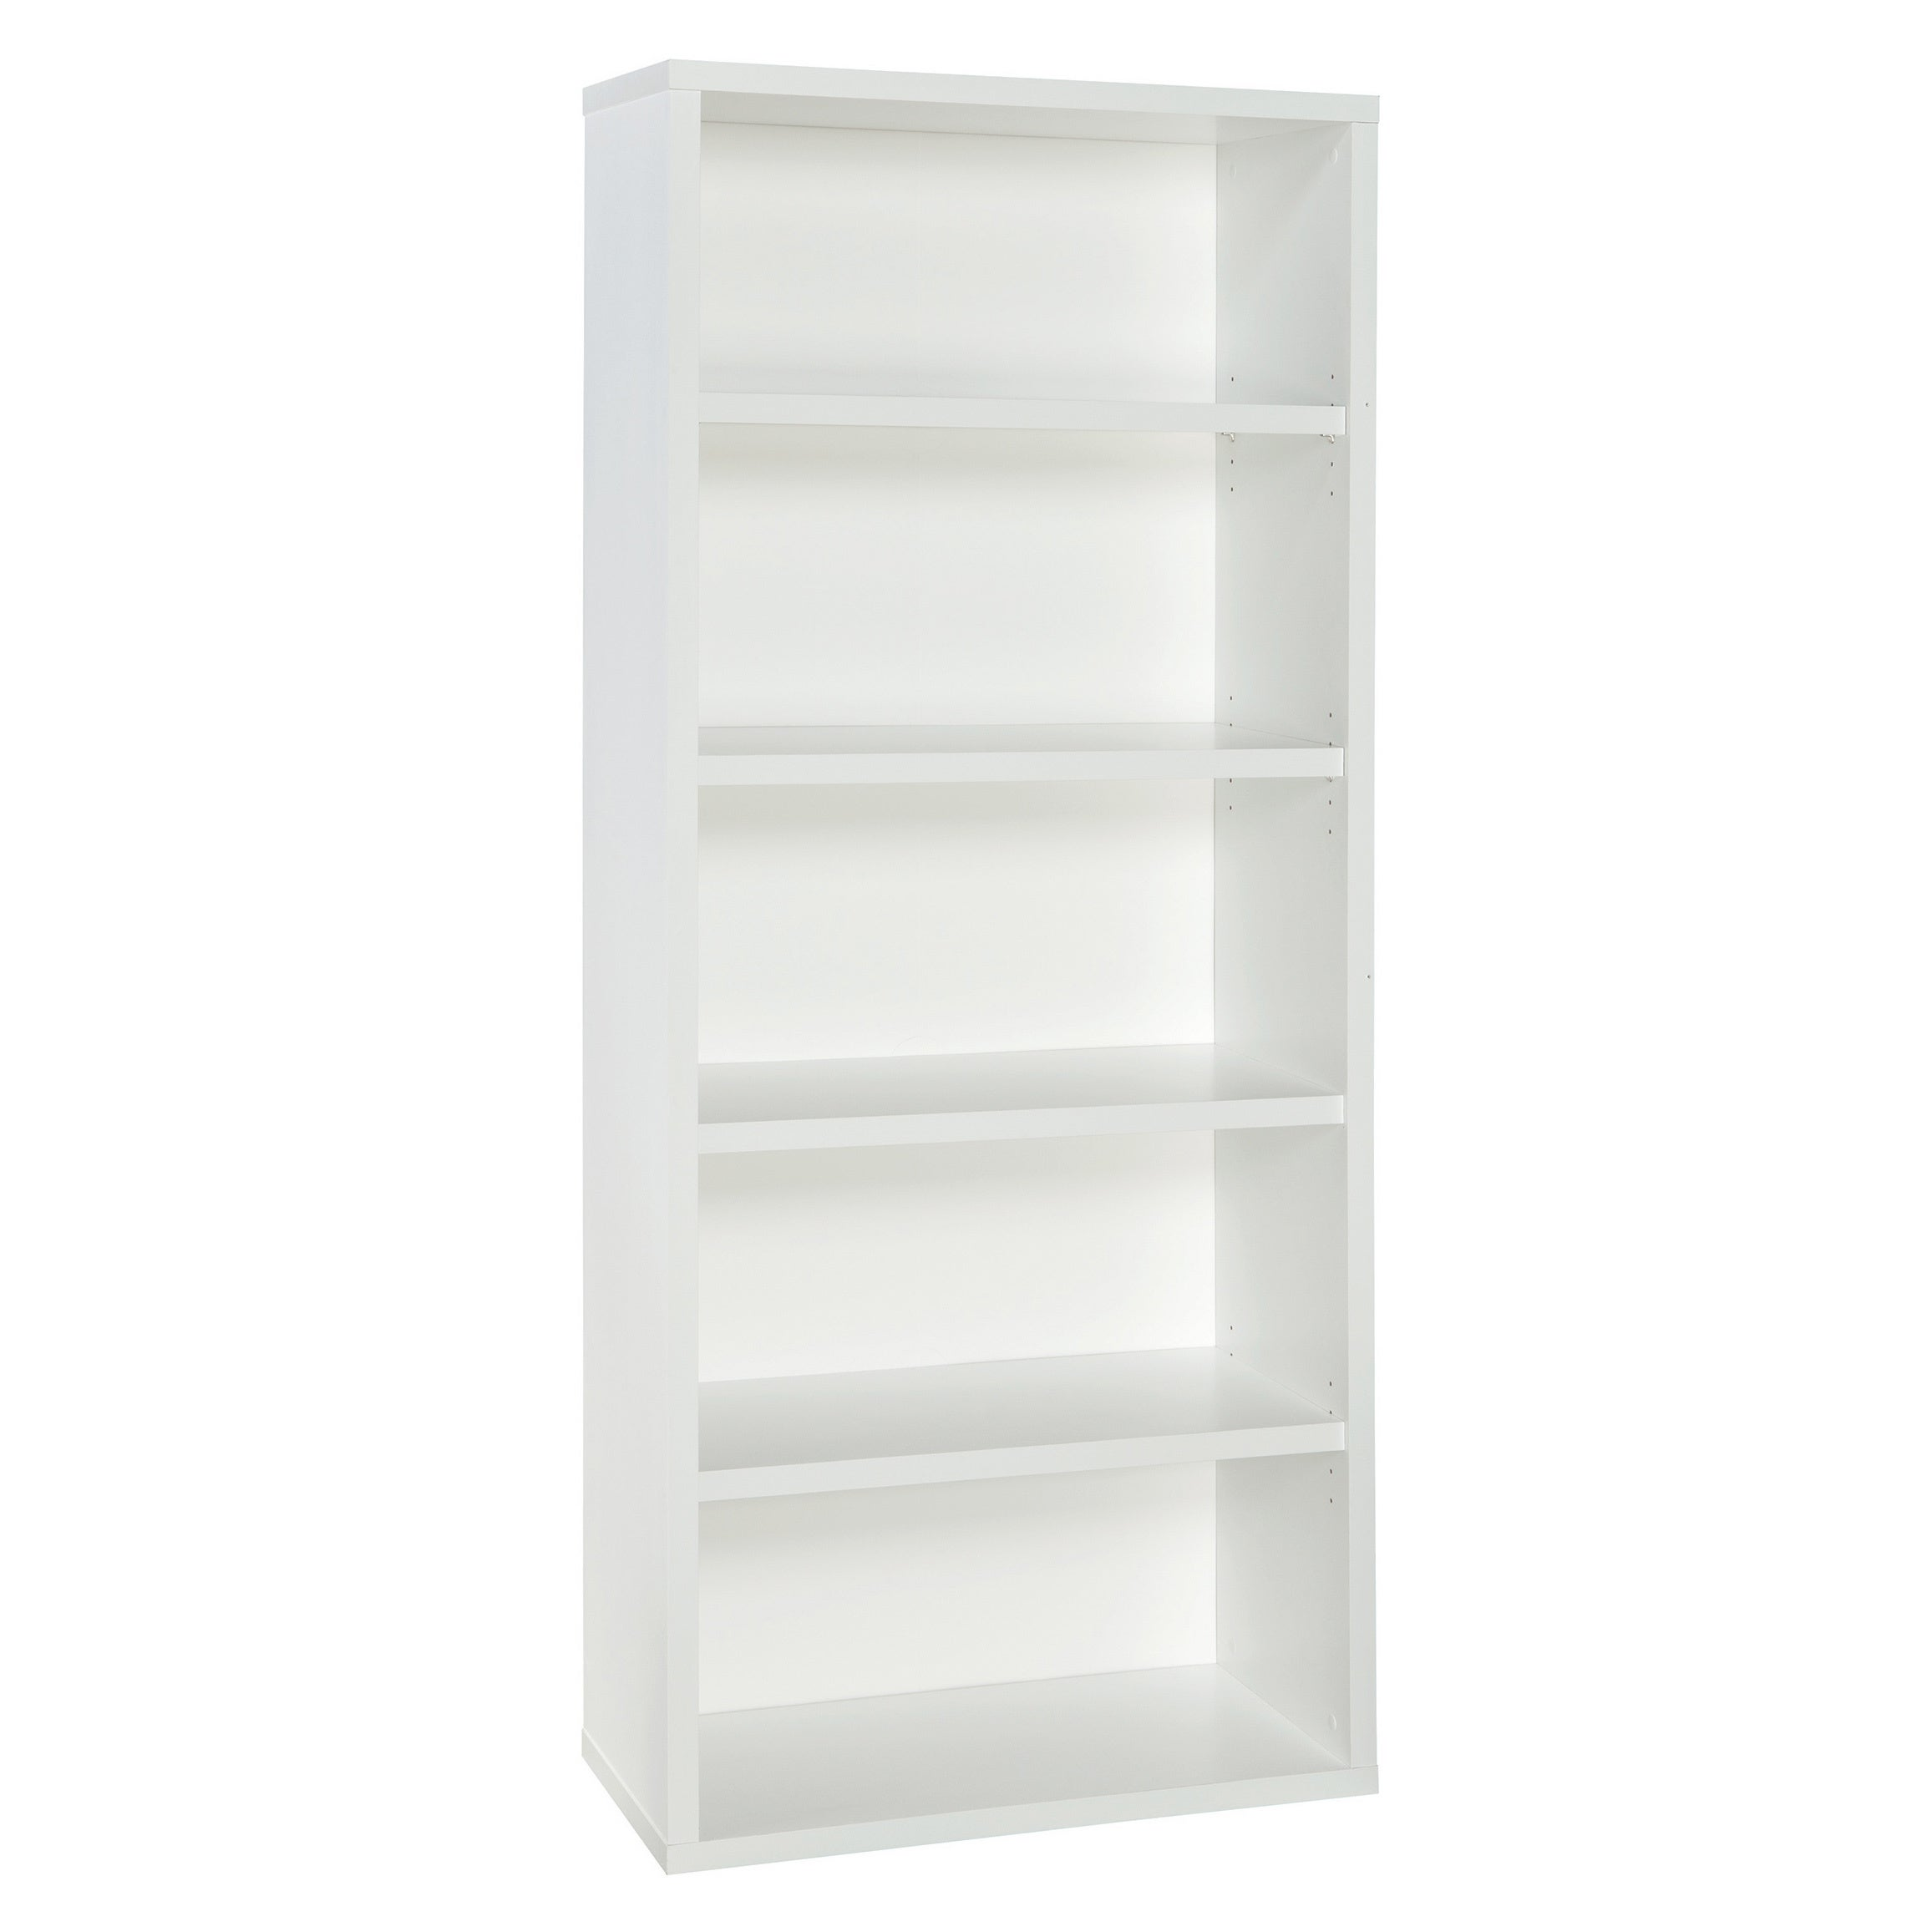 Shop Closetmaid Premium White 5 Shelf Adjustable Bookcase Free